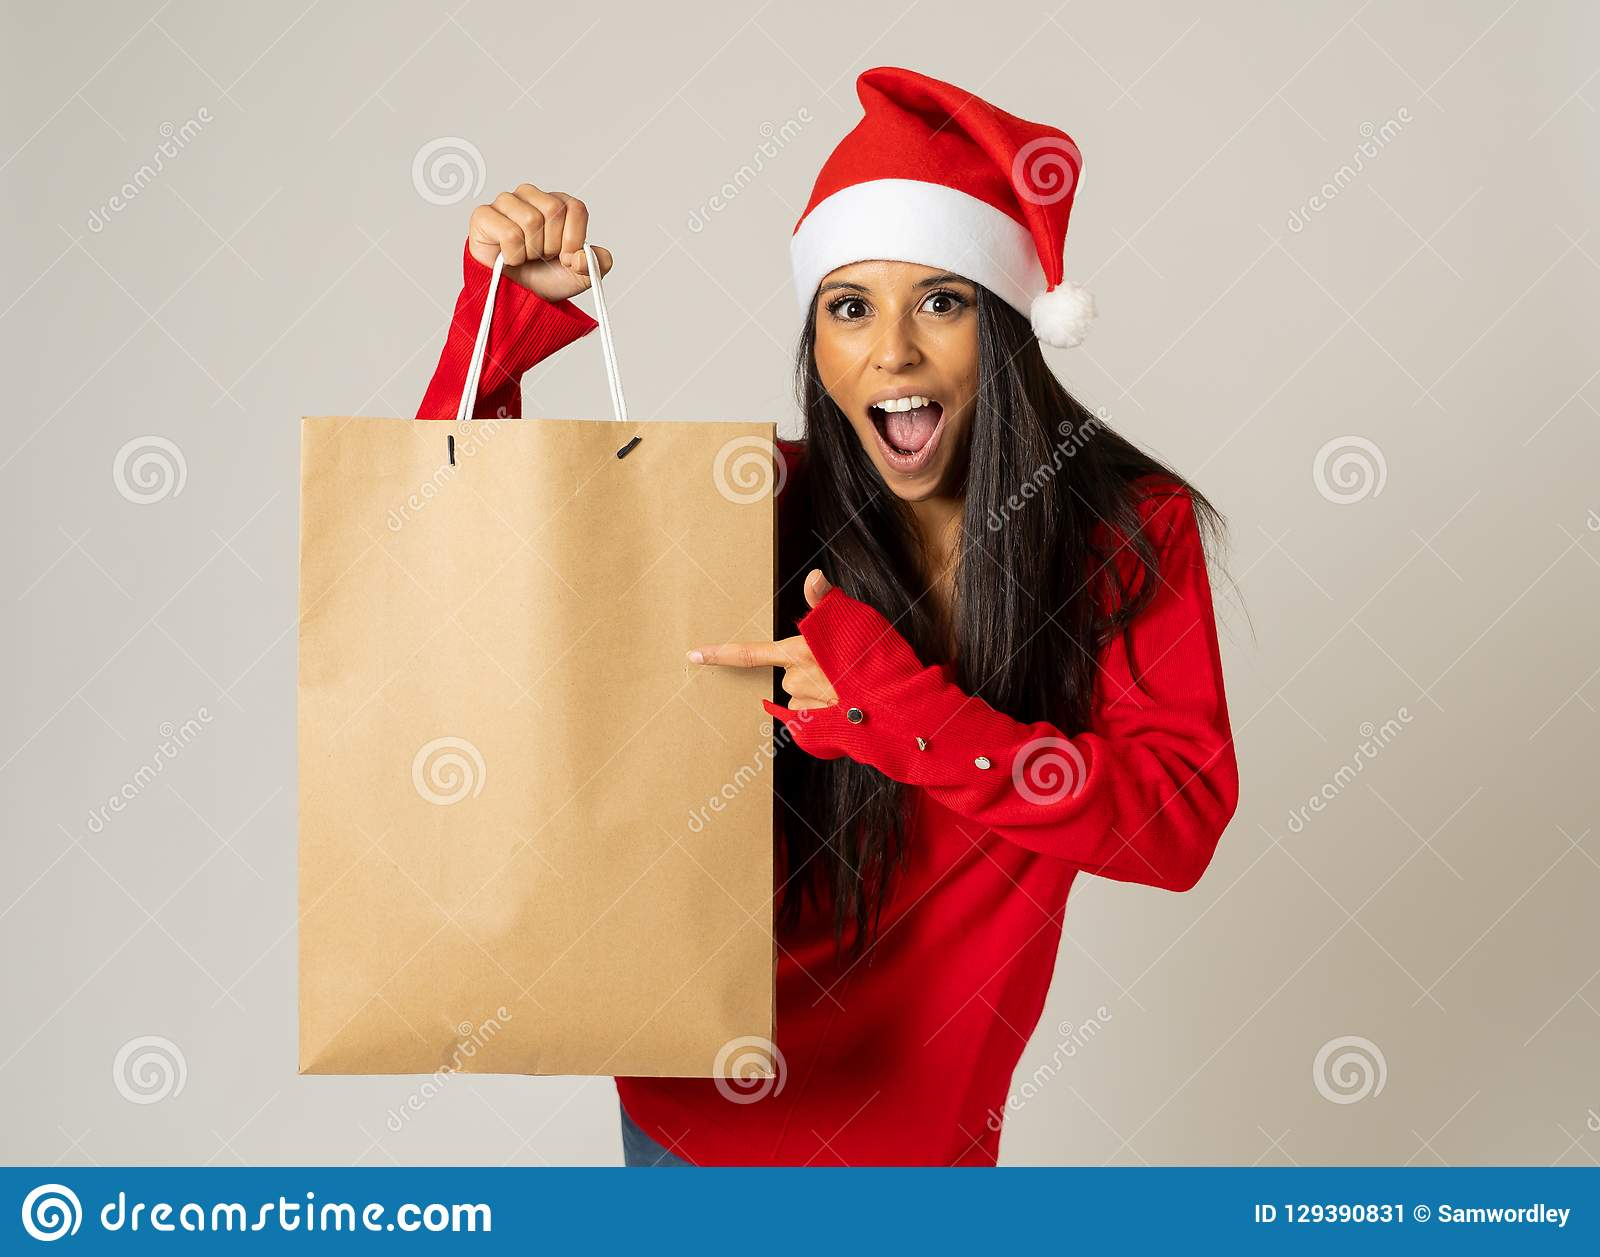 Woman shopping for christmas gifts with shopping bags and santa hat looking excited and happy